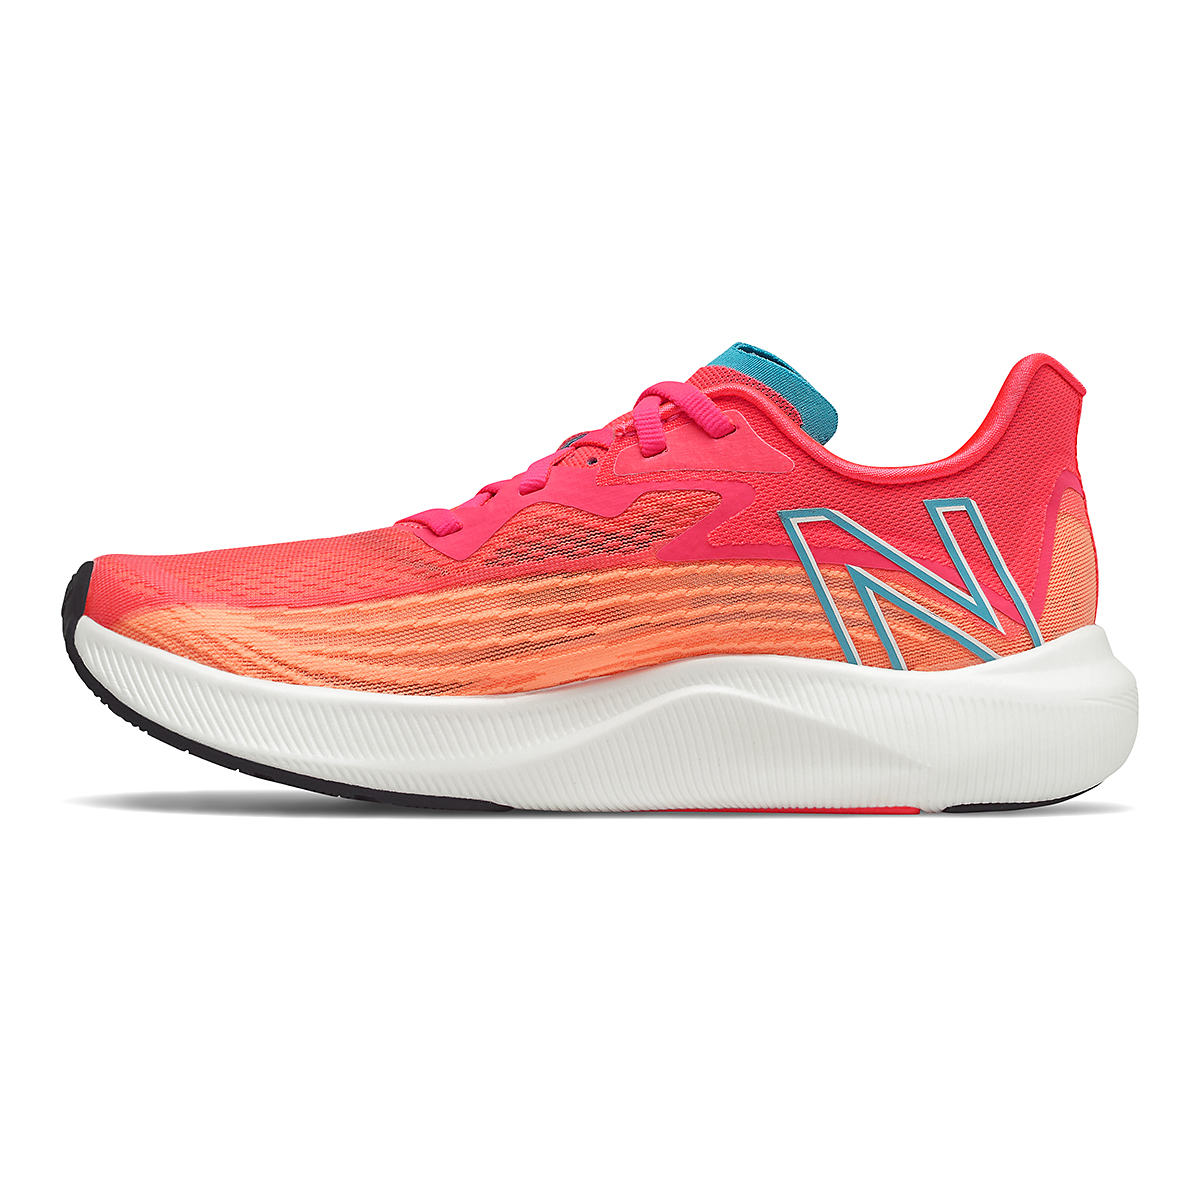 Women's New Balance Fuelcell Rebel V2 Running Shoe - Color: Citrus Punch/Vivid Coral/Ghost Pepper - Size: 7 - Width: Regular, Citrus Punch/Vivid Coral/Ghost Pepper, large, image 2